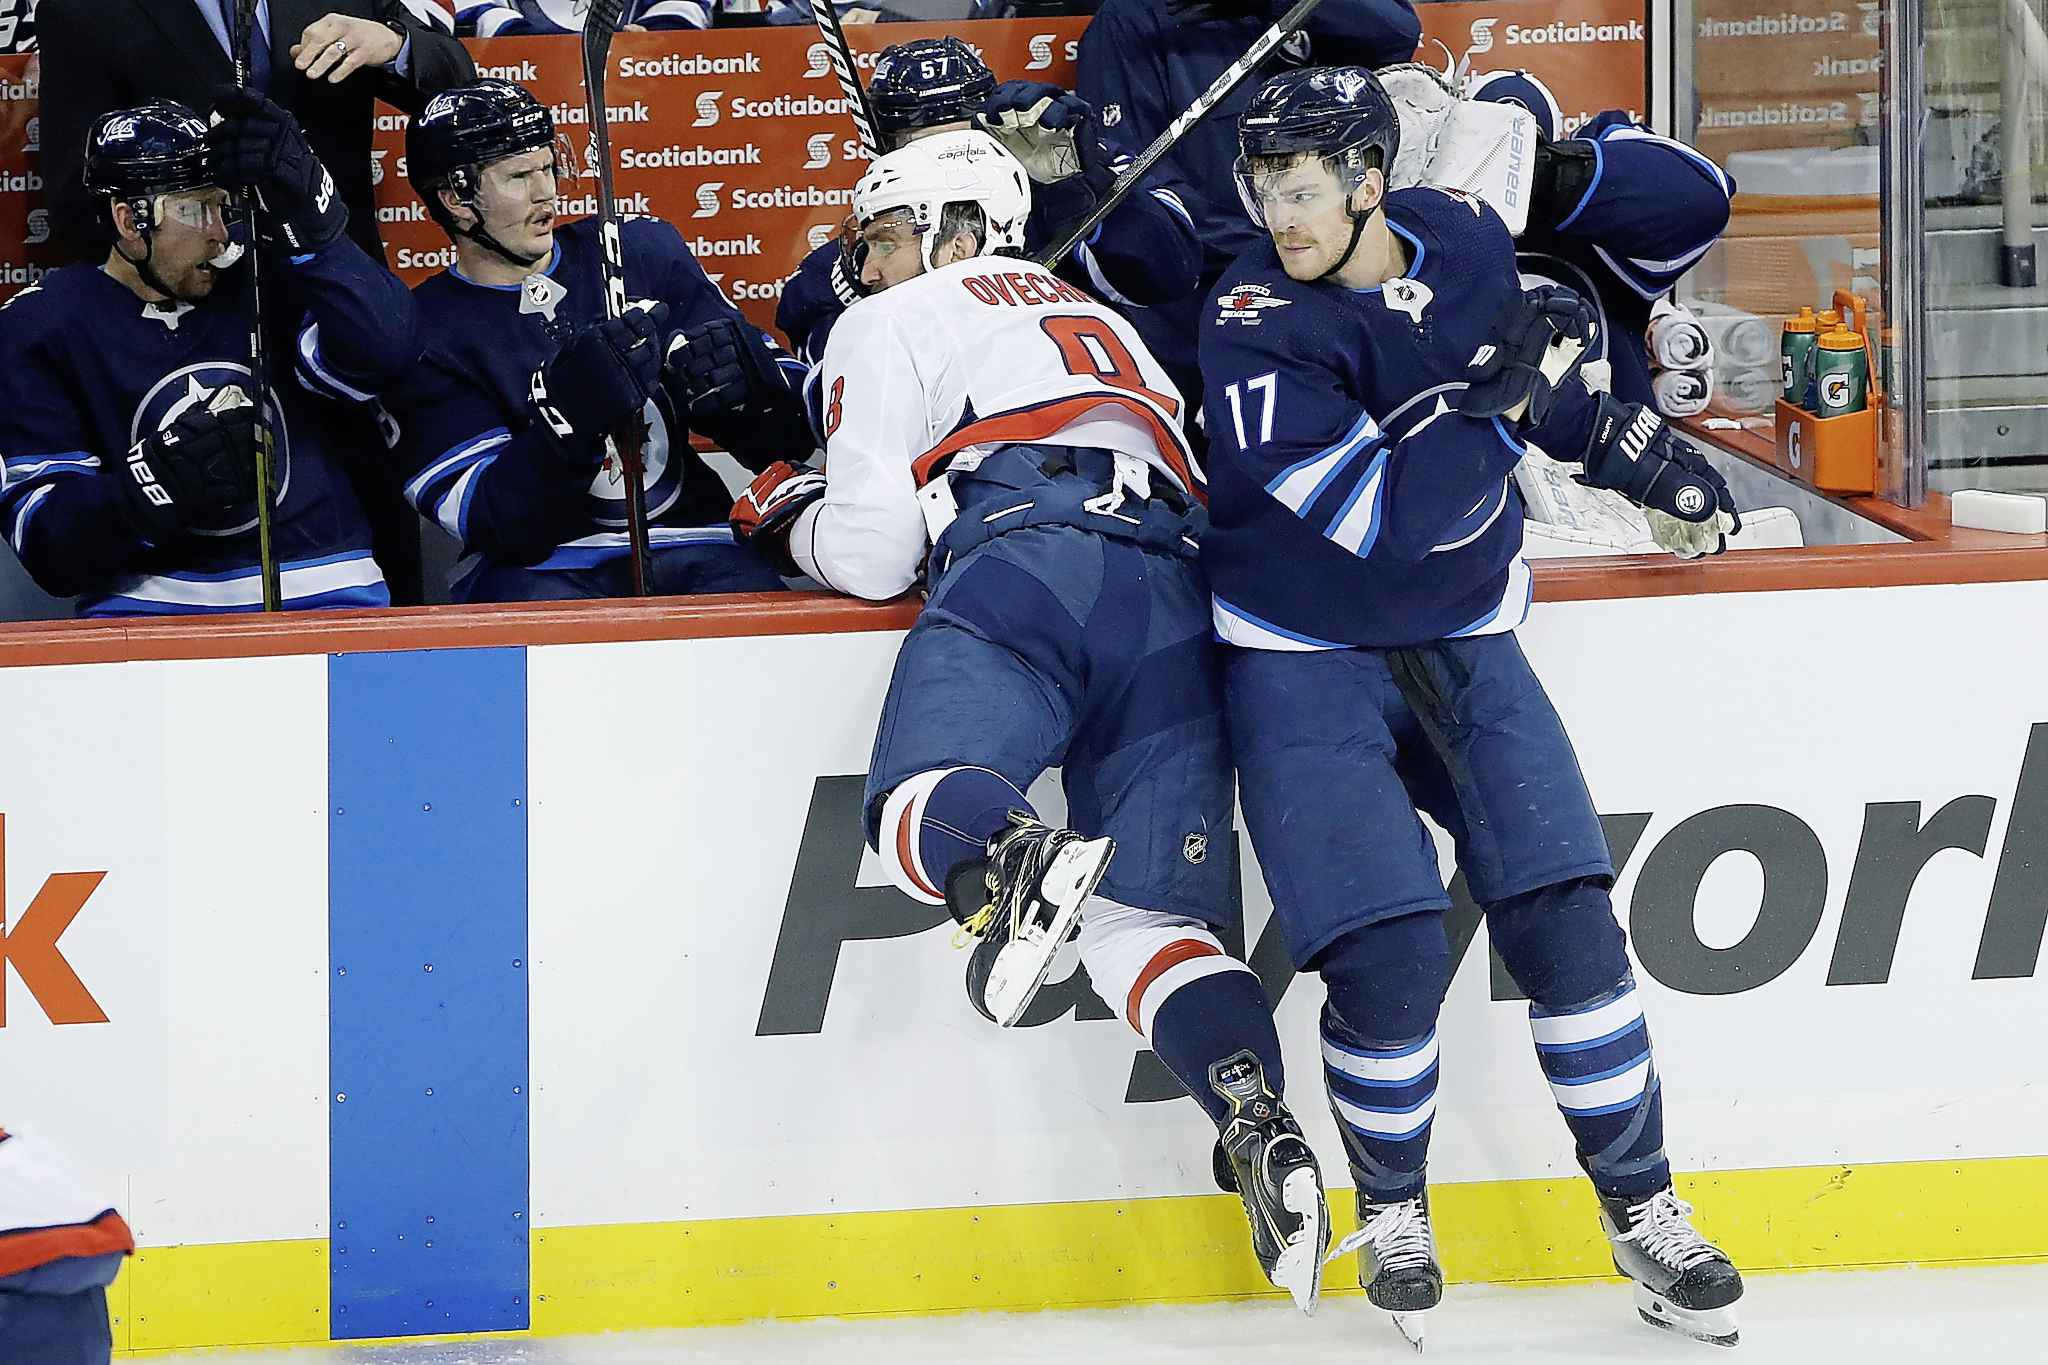 Winnipeg Jets' Adam Lowry checks Washington Capitals' Alex Ovechkin during the first period.